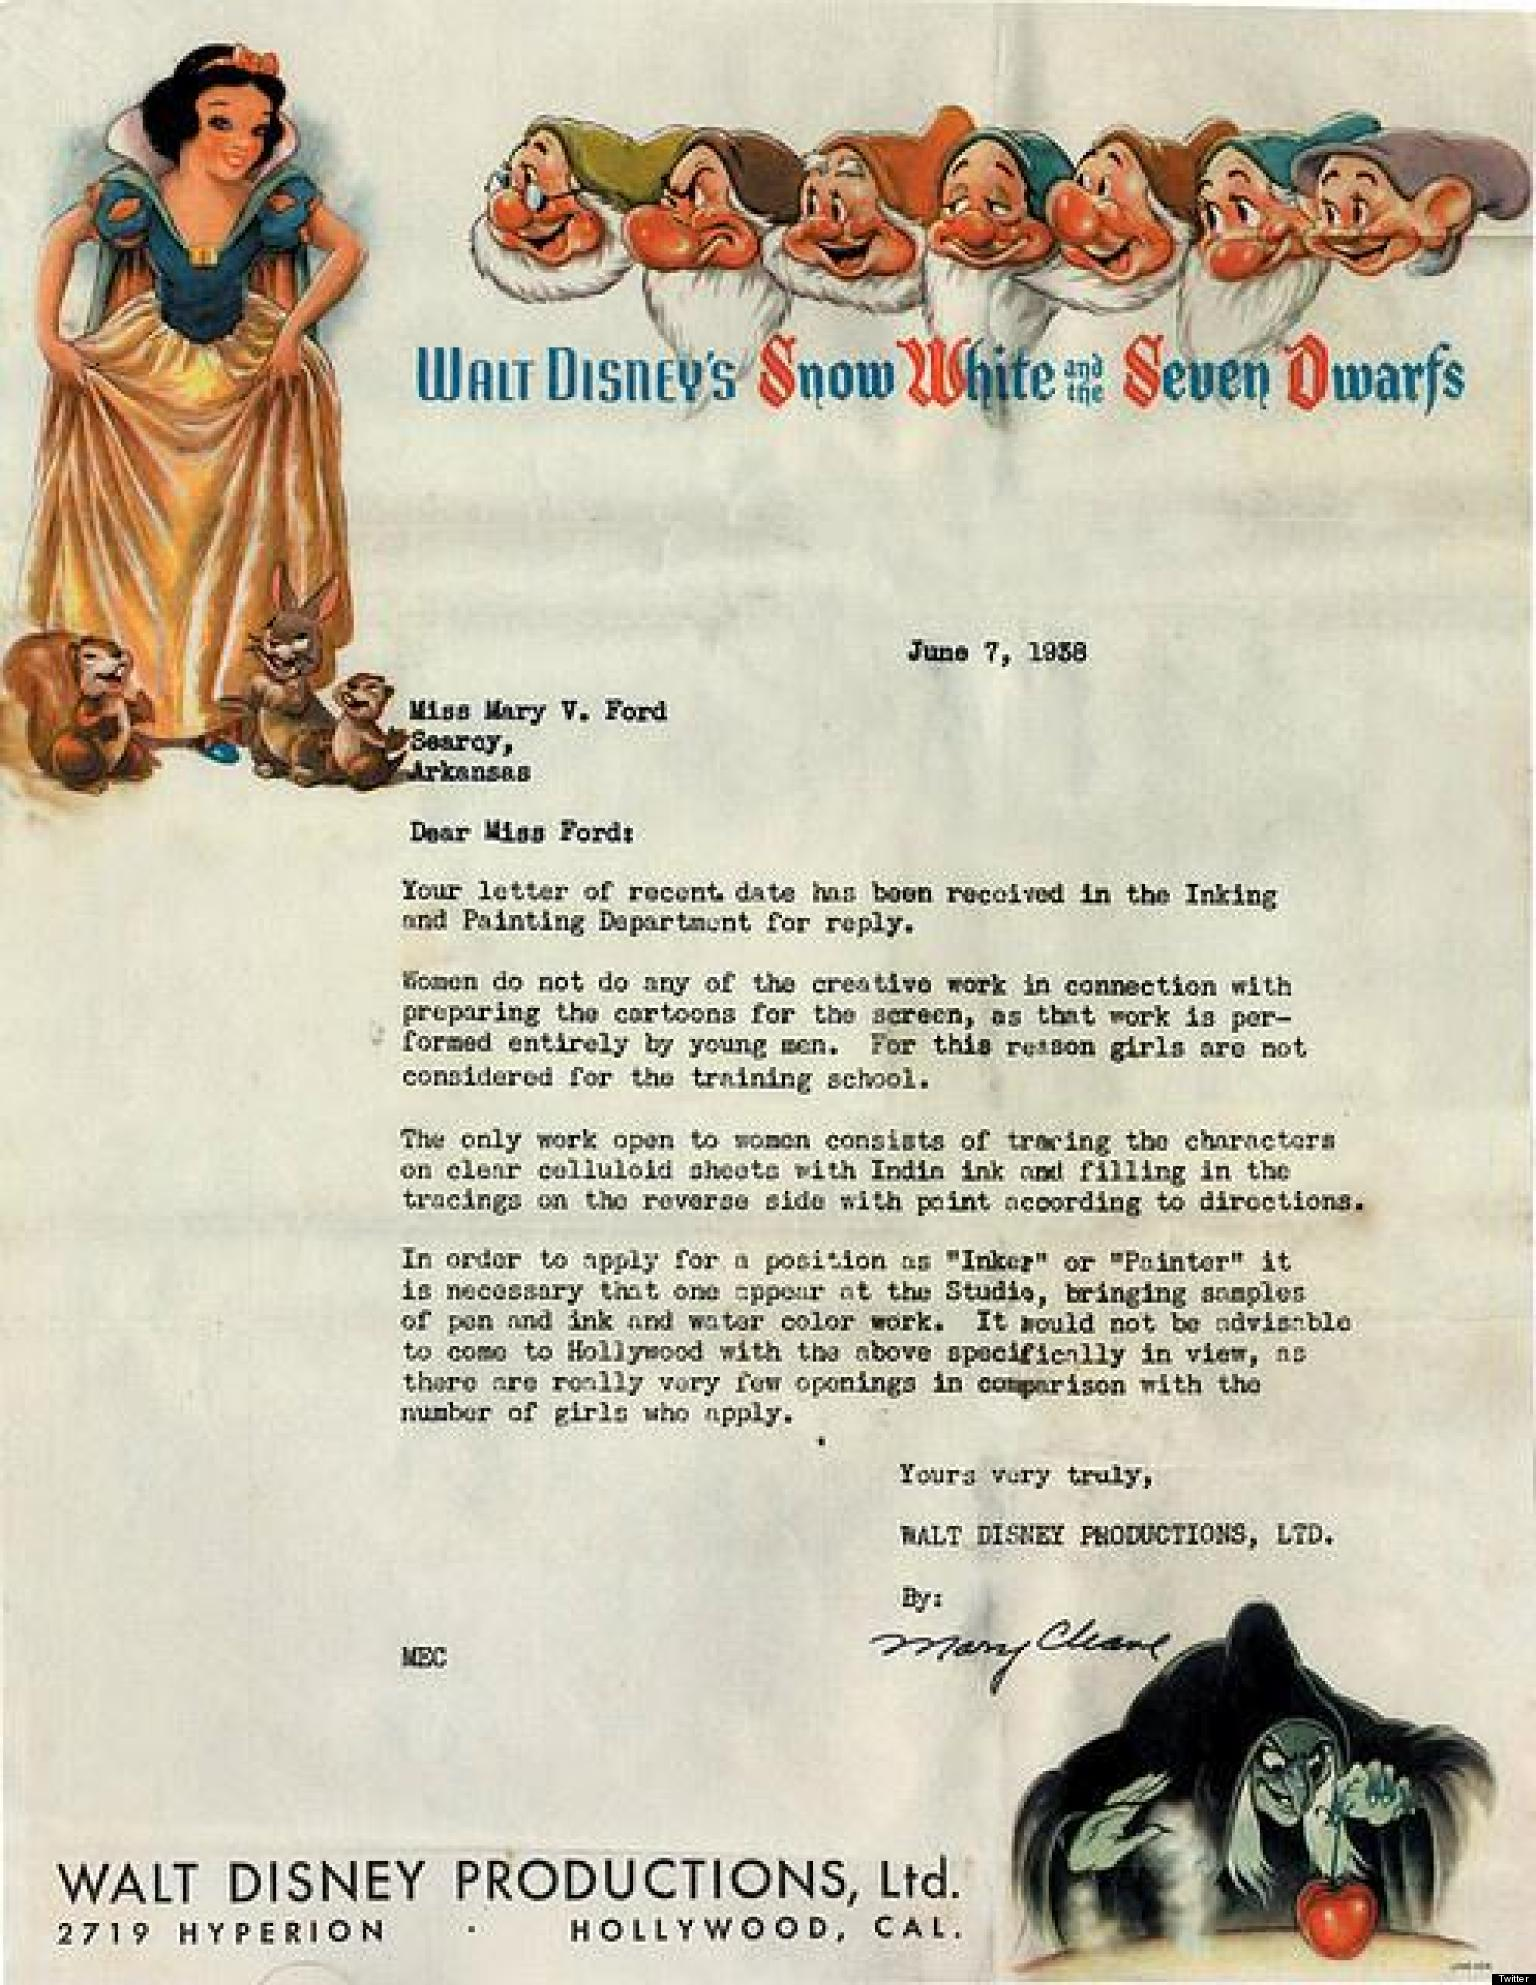 disney rejection letter from 1938 tells candidate   u0026 39 girls